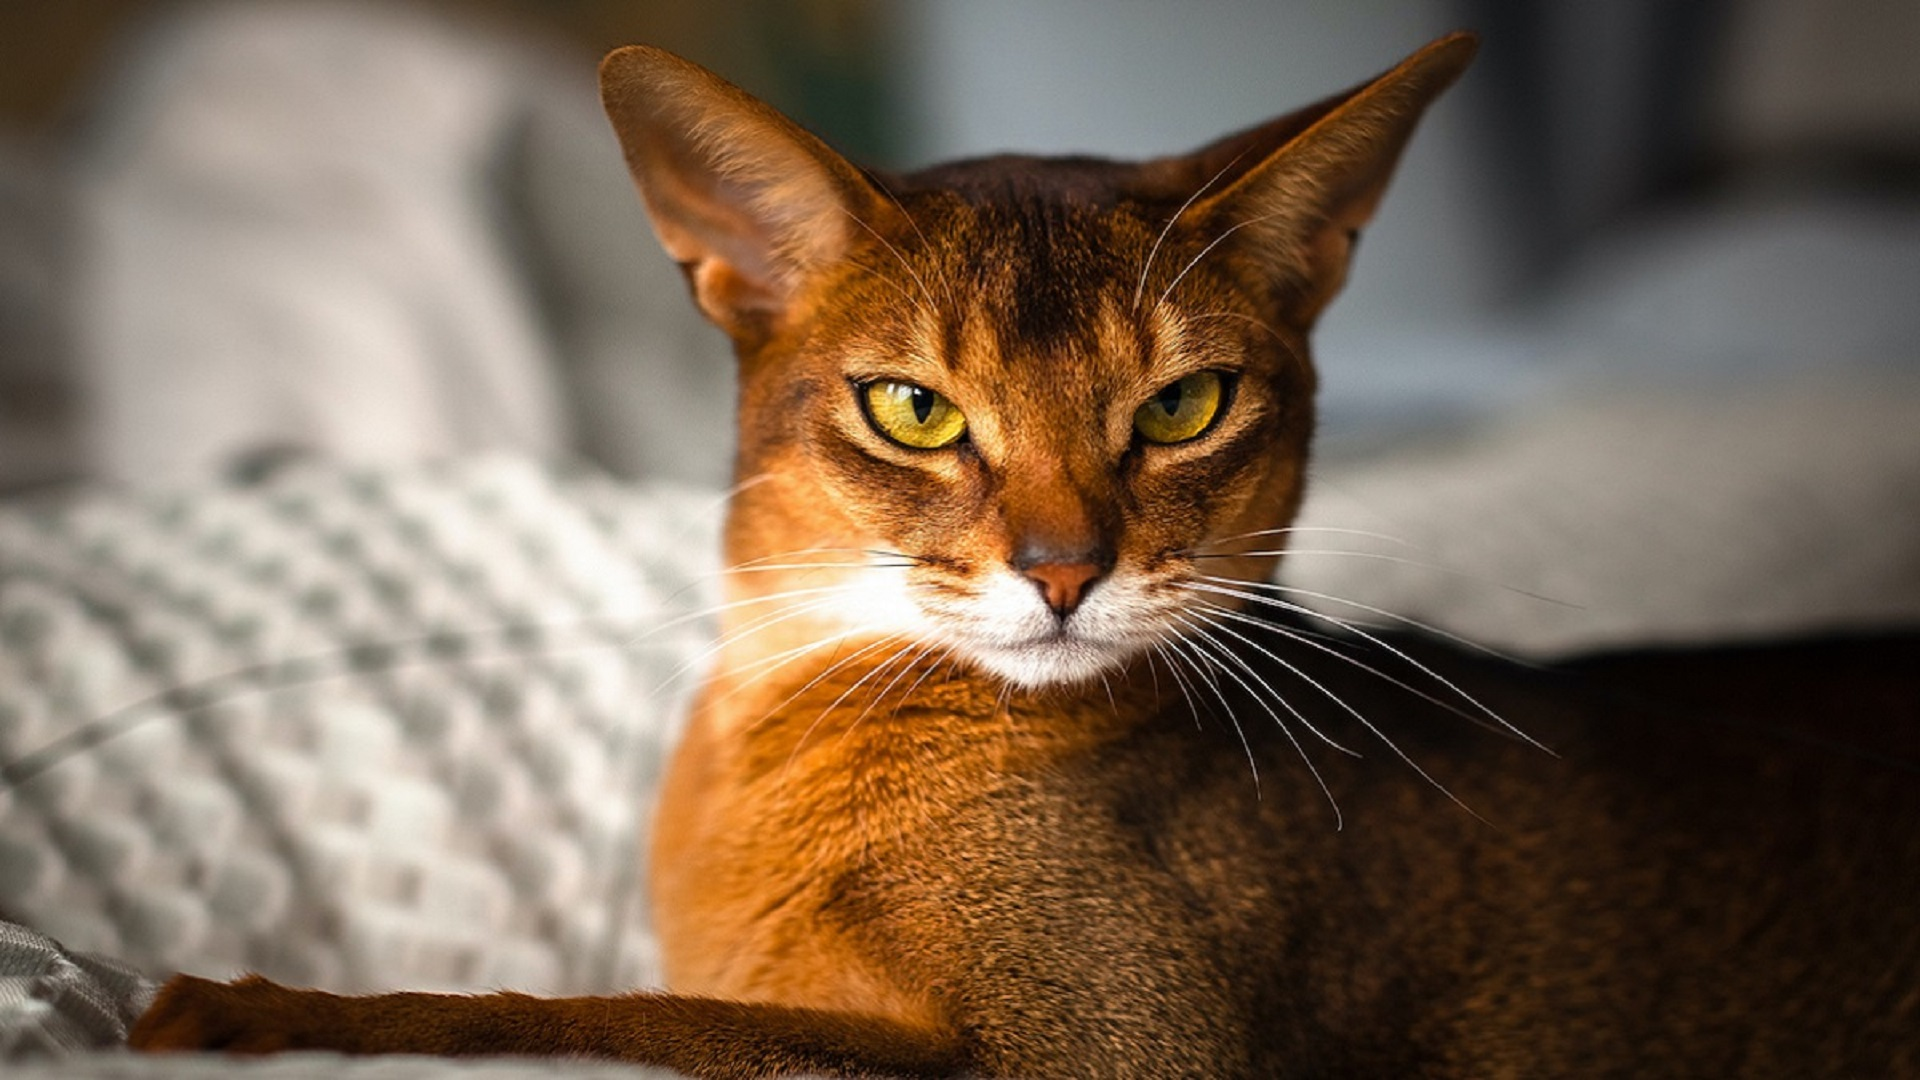 Abyssinian cat with reddish fur and yellow eyes